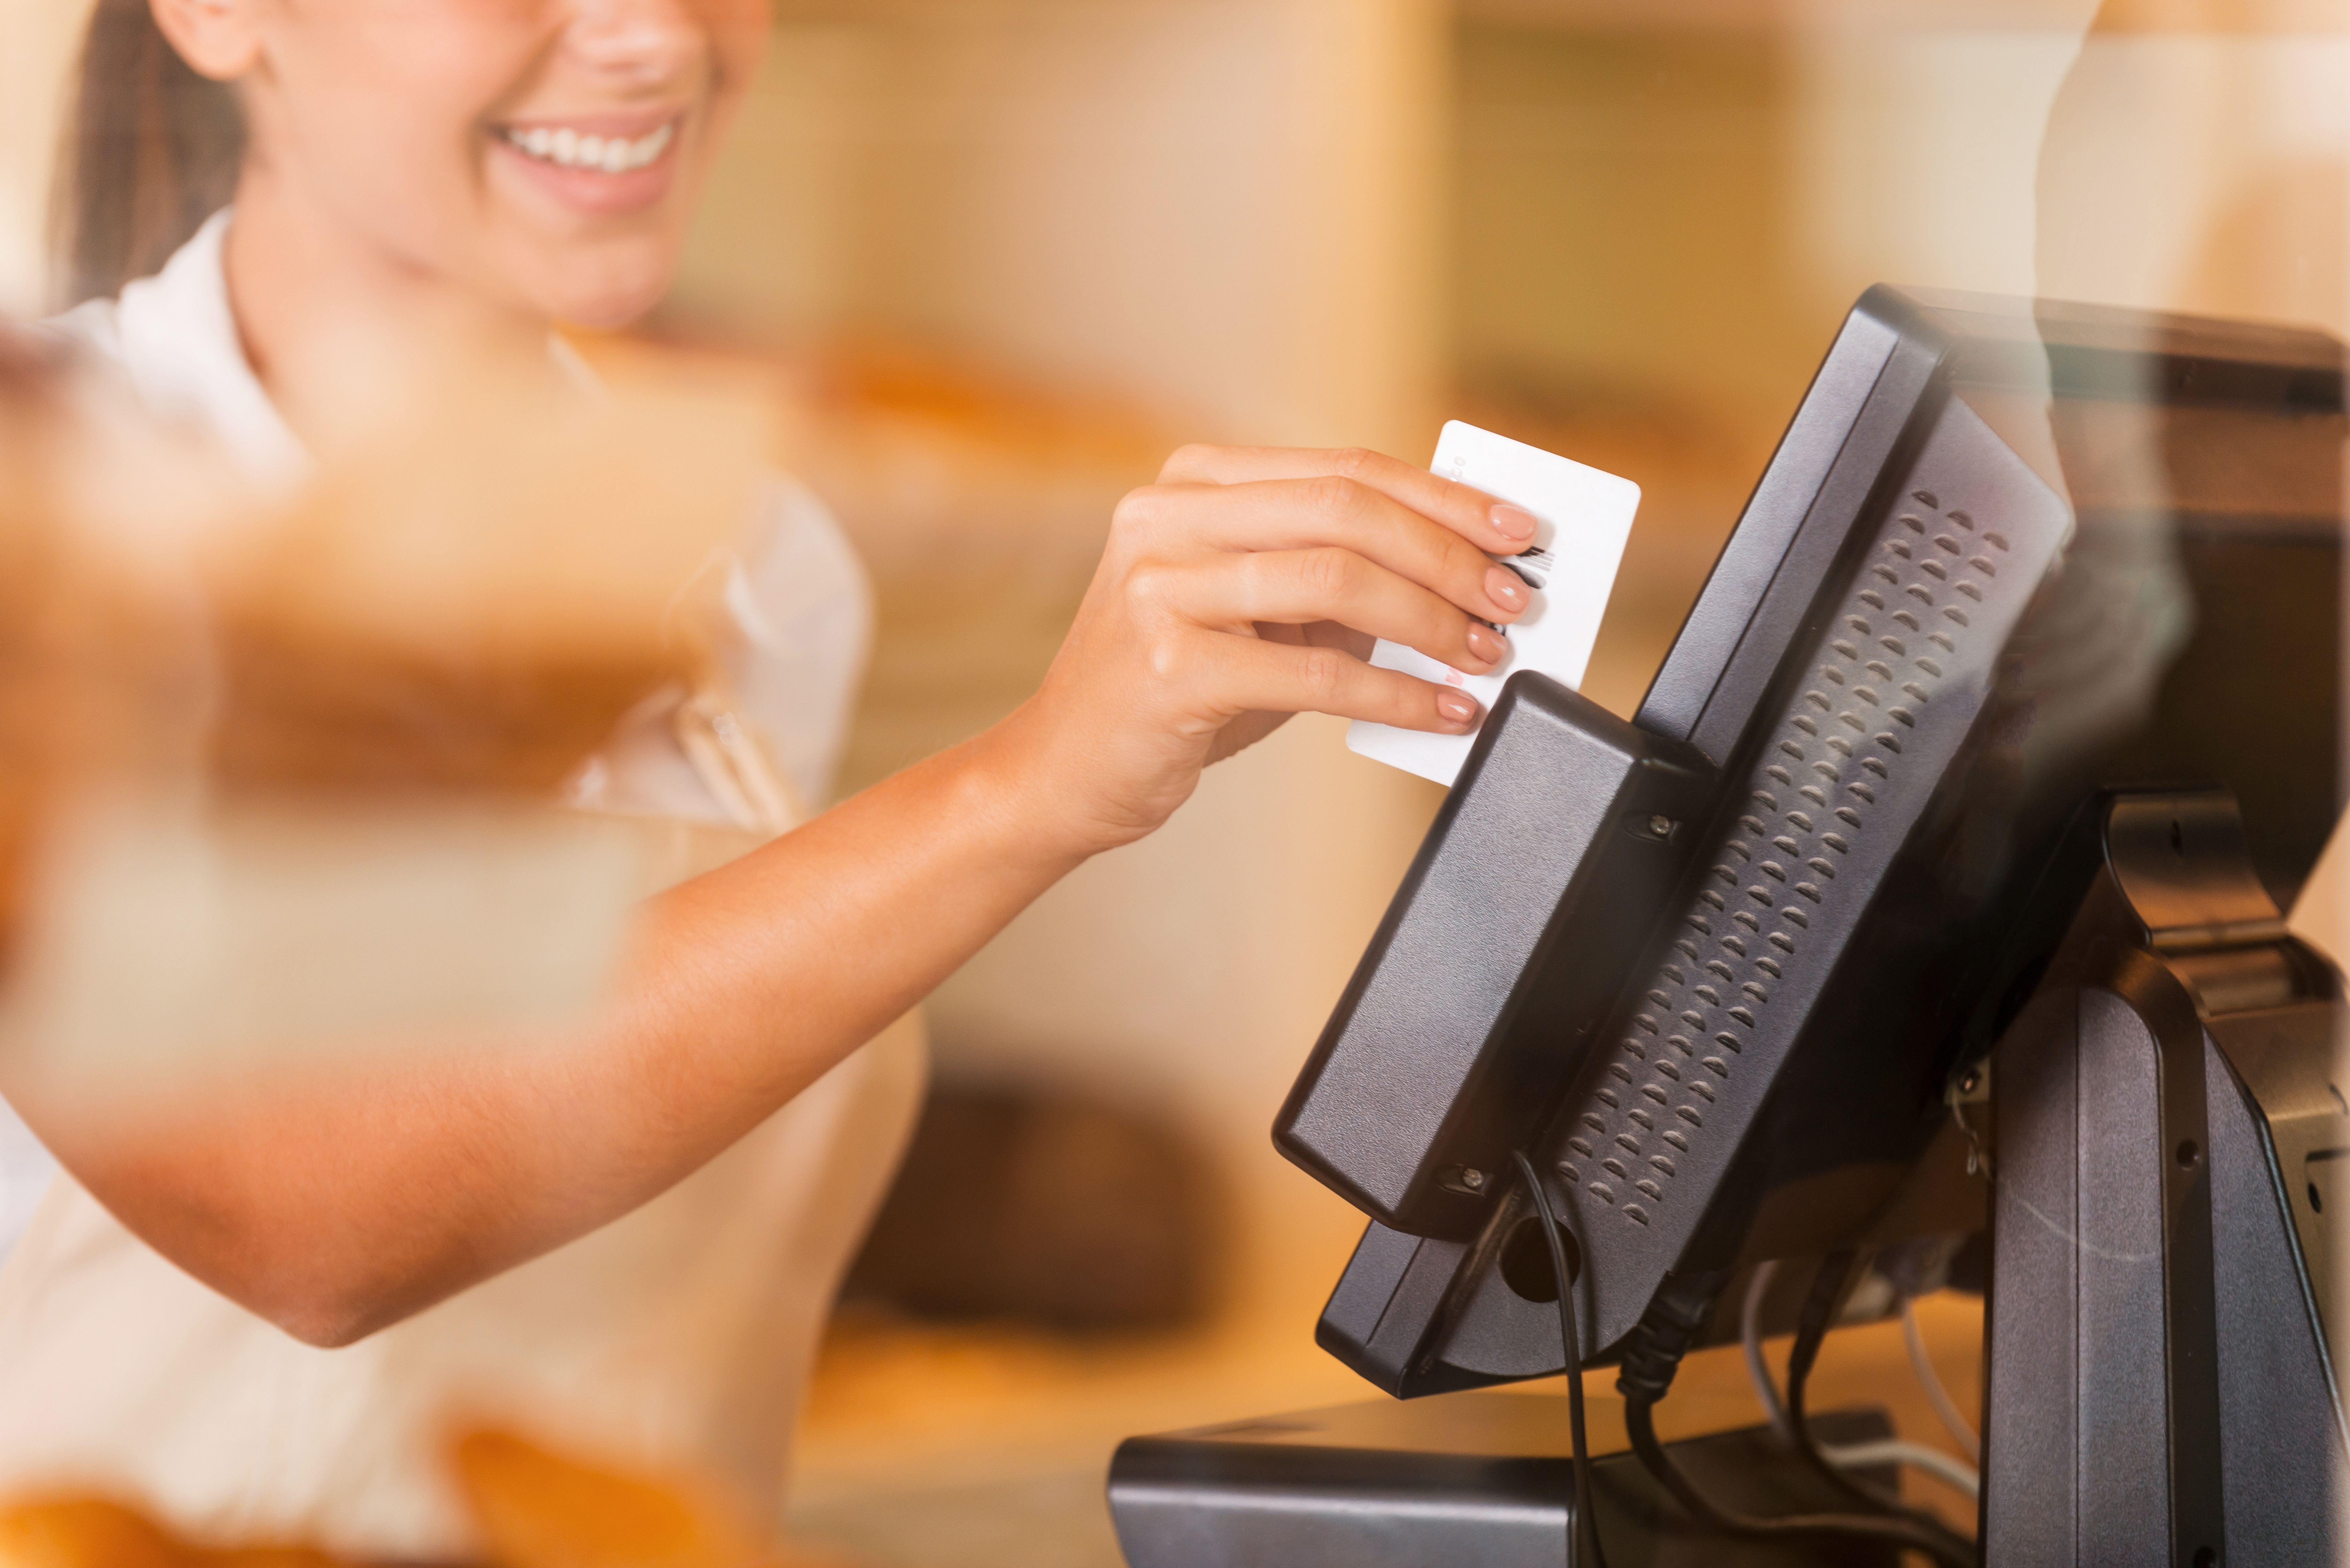 swiping credit card on cash register